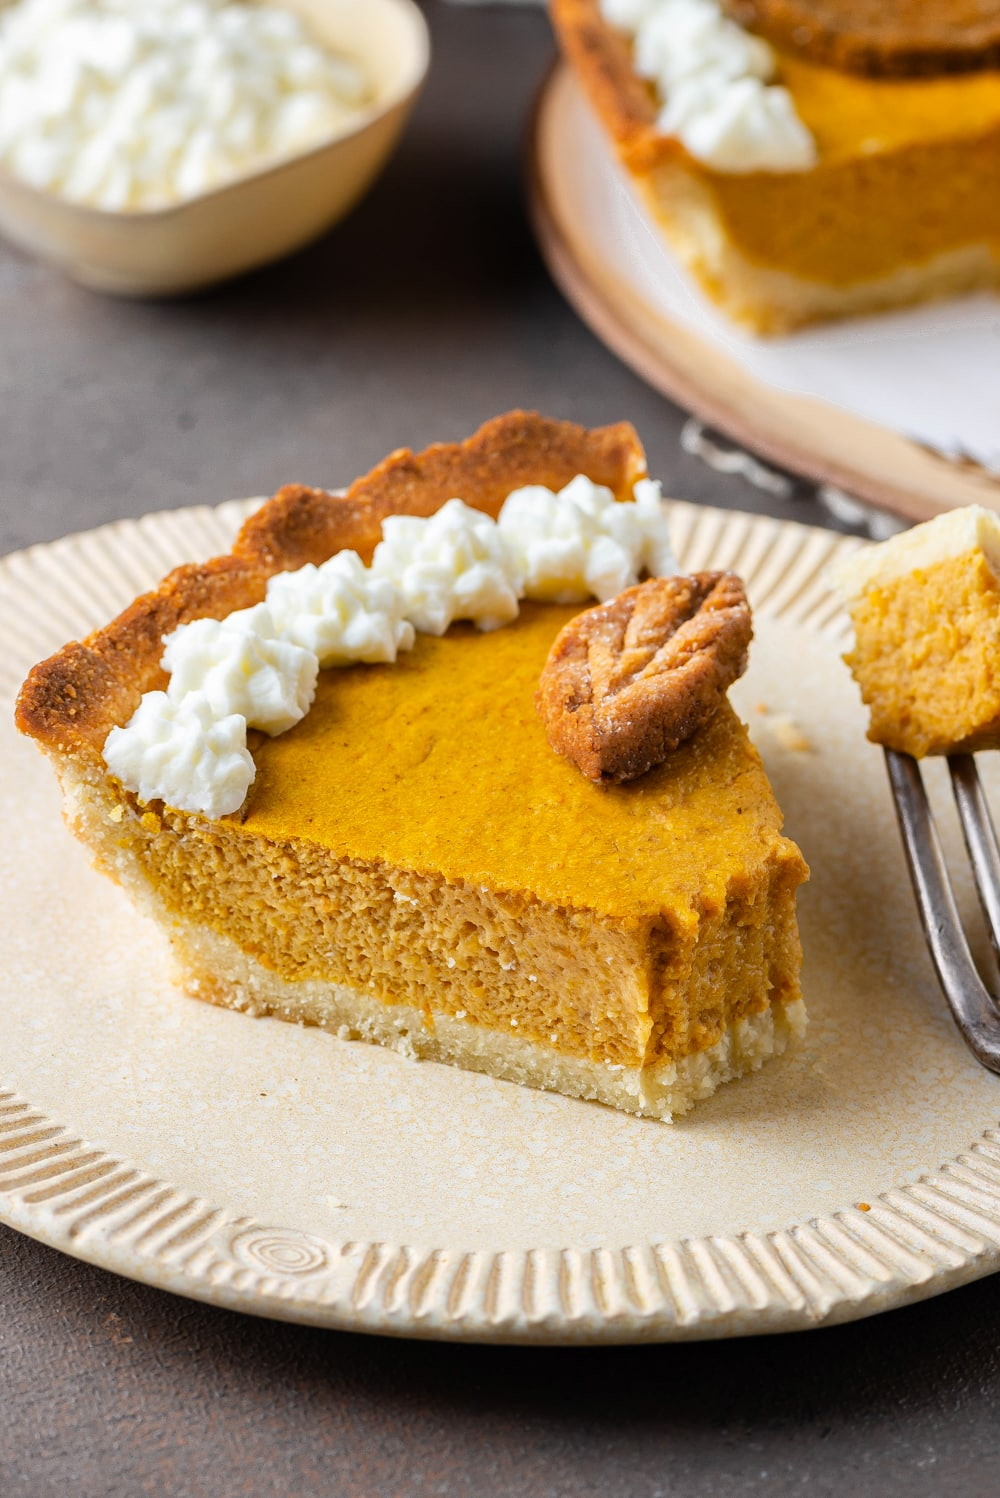 A slice of pumpkin pie with a piece take off of it.